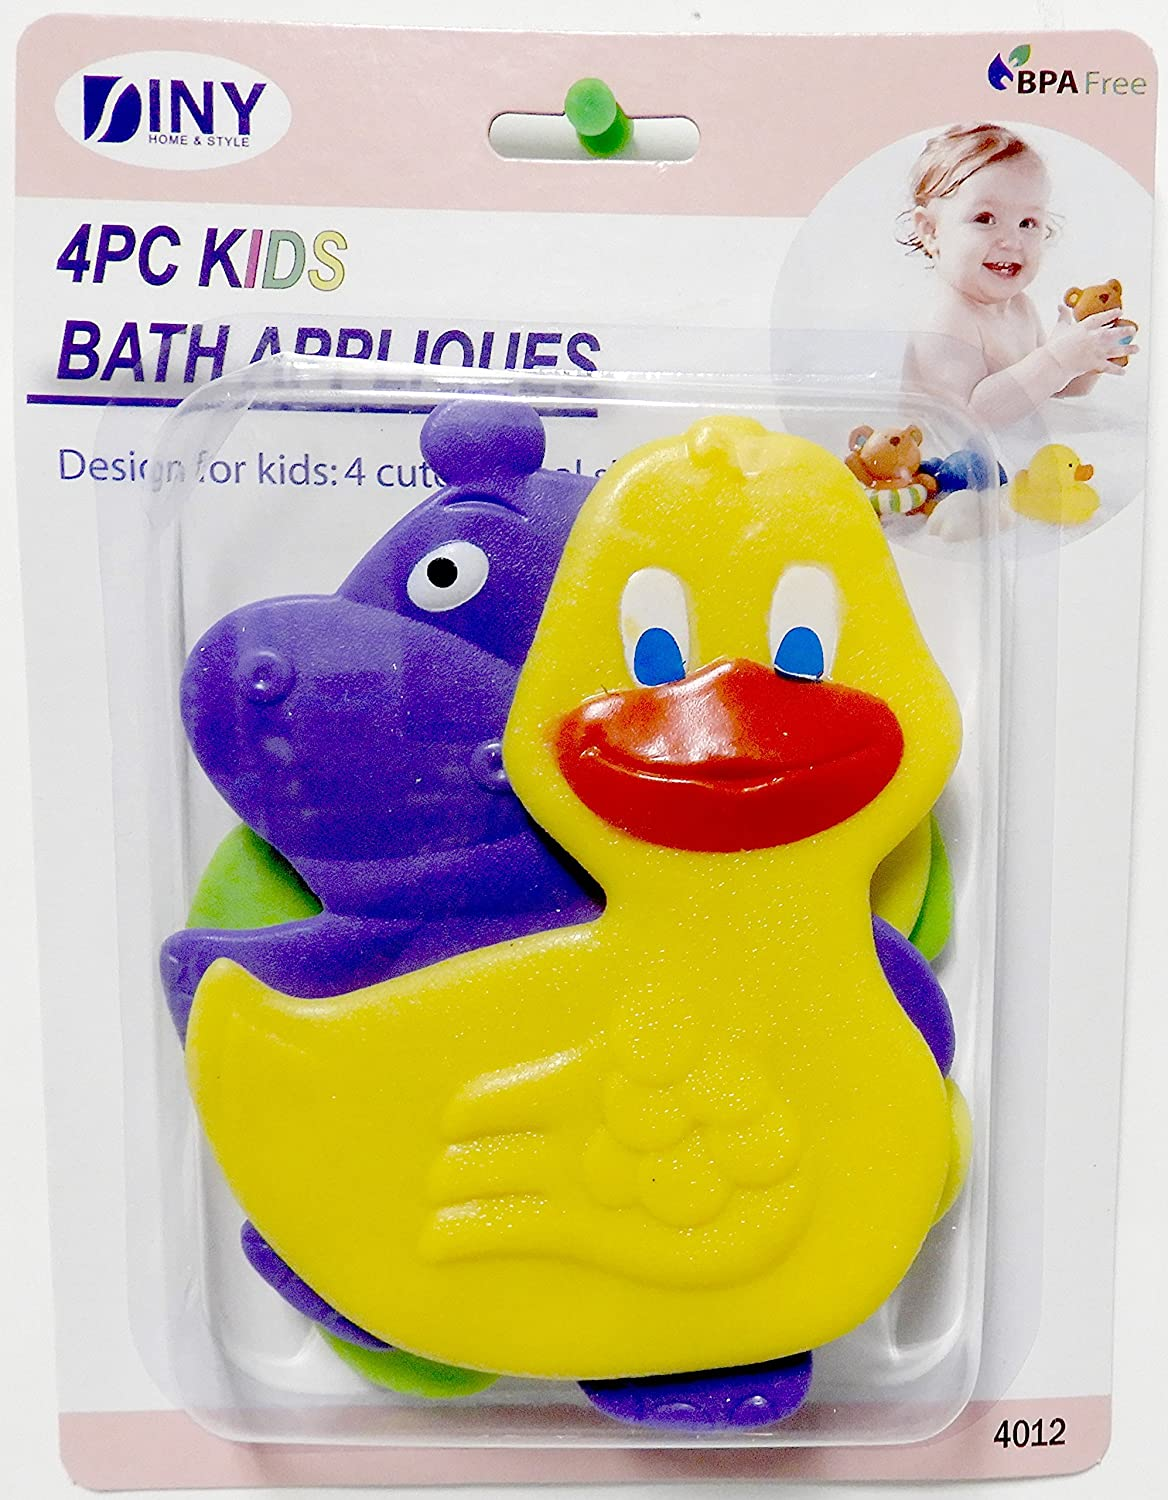 DINY Non-Slip Children's Bath Tub Applique with Suction Cup Bottom Combo 4 Pack Dependable Industries